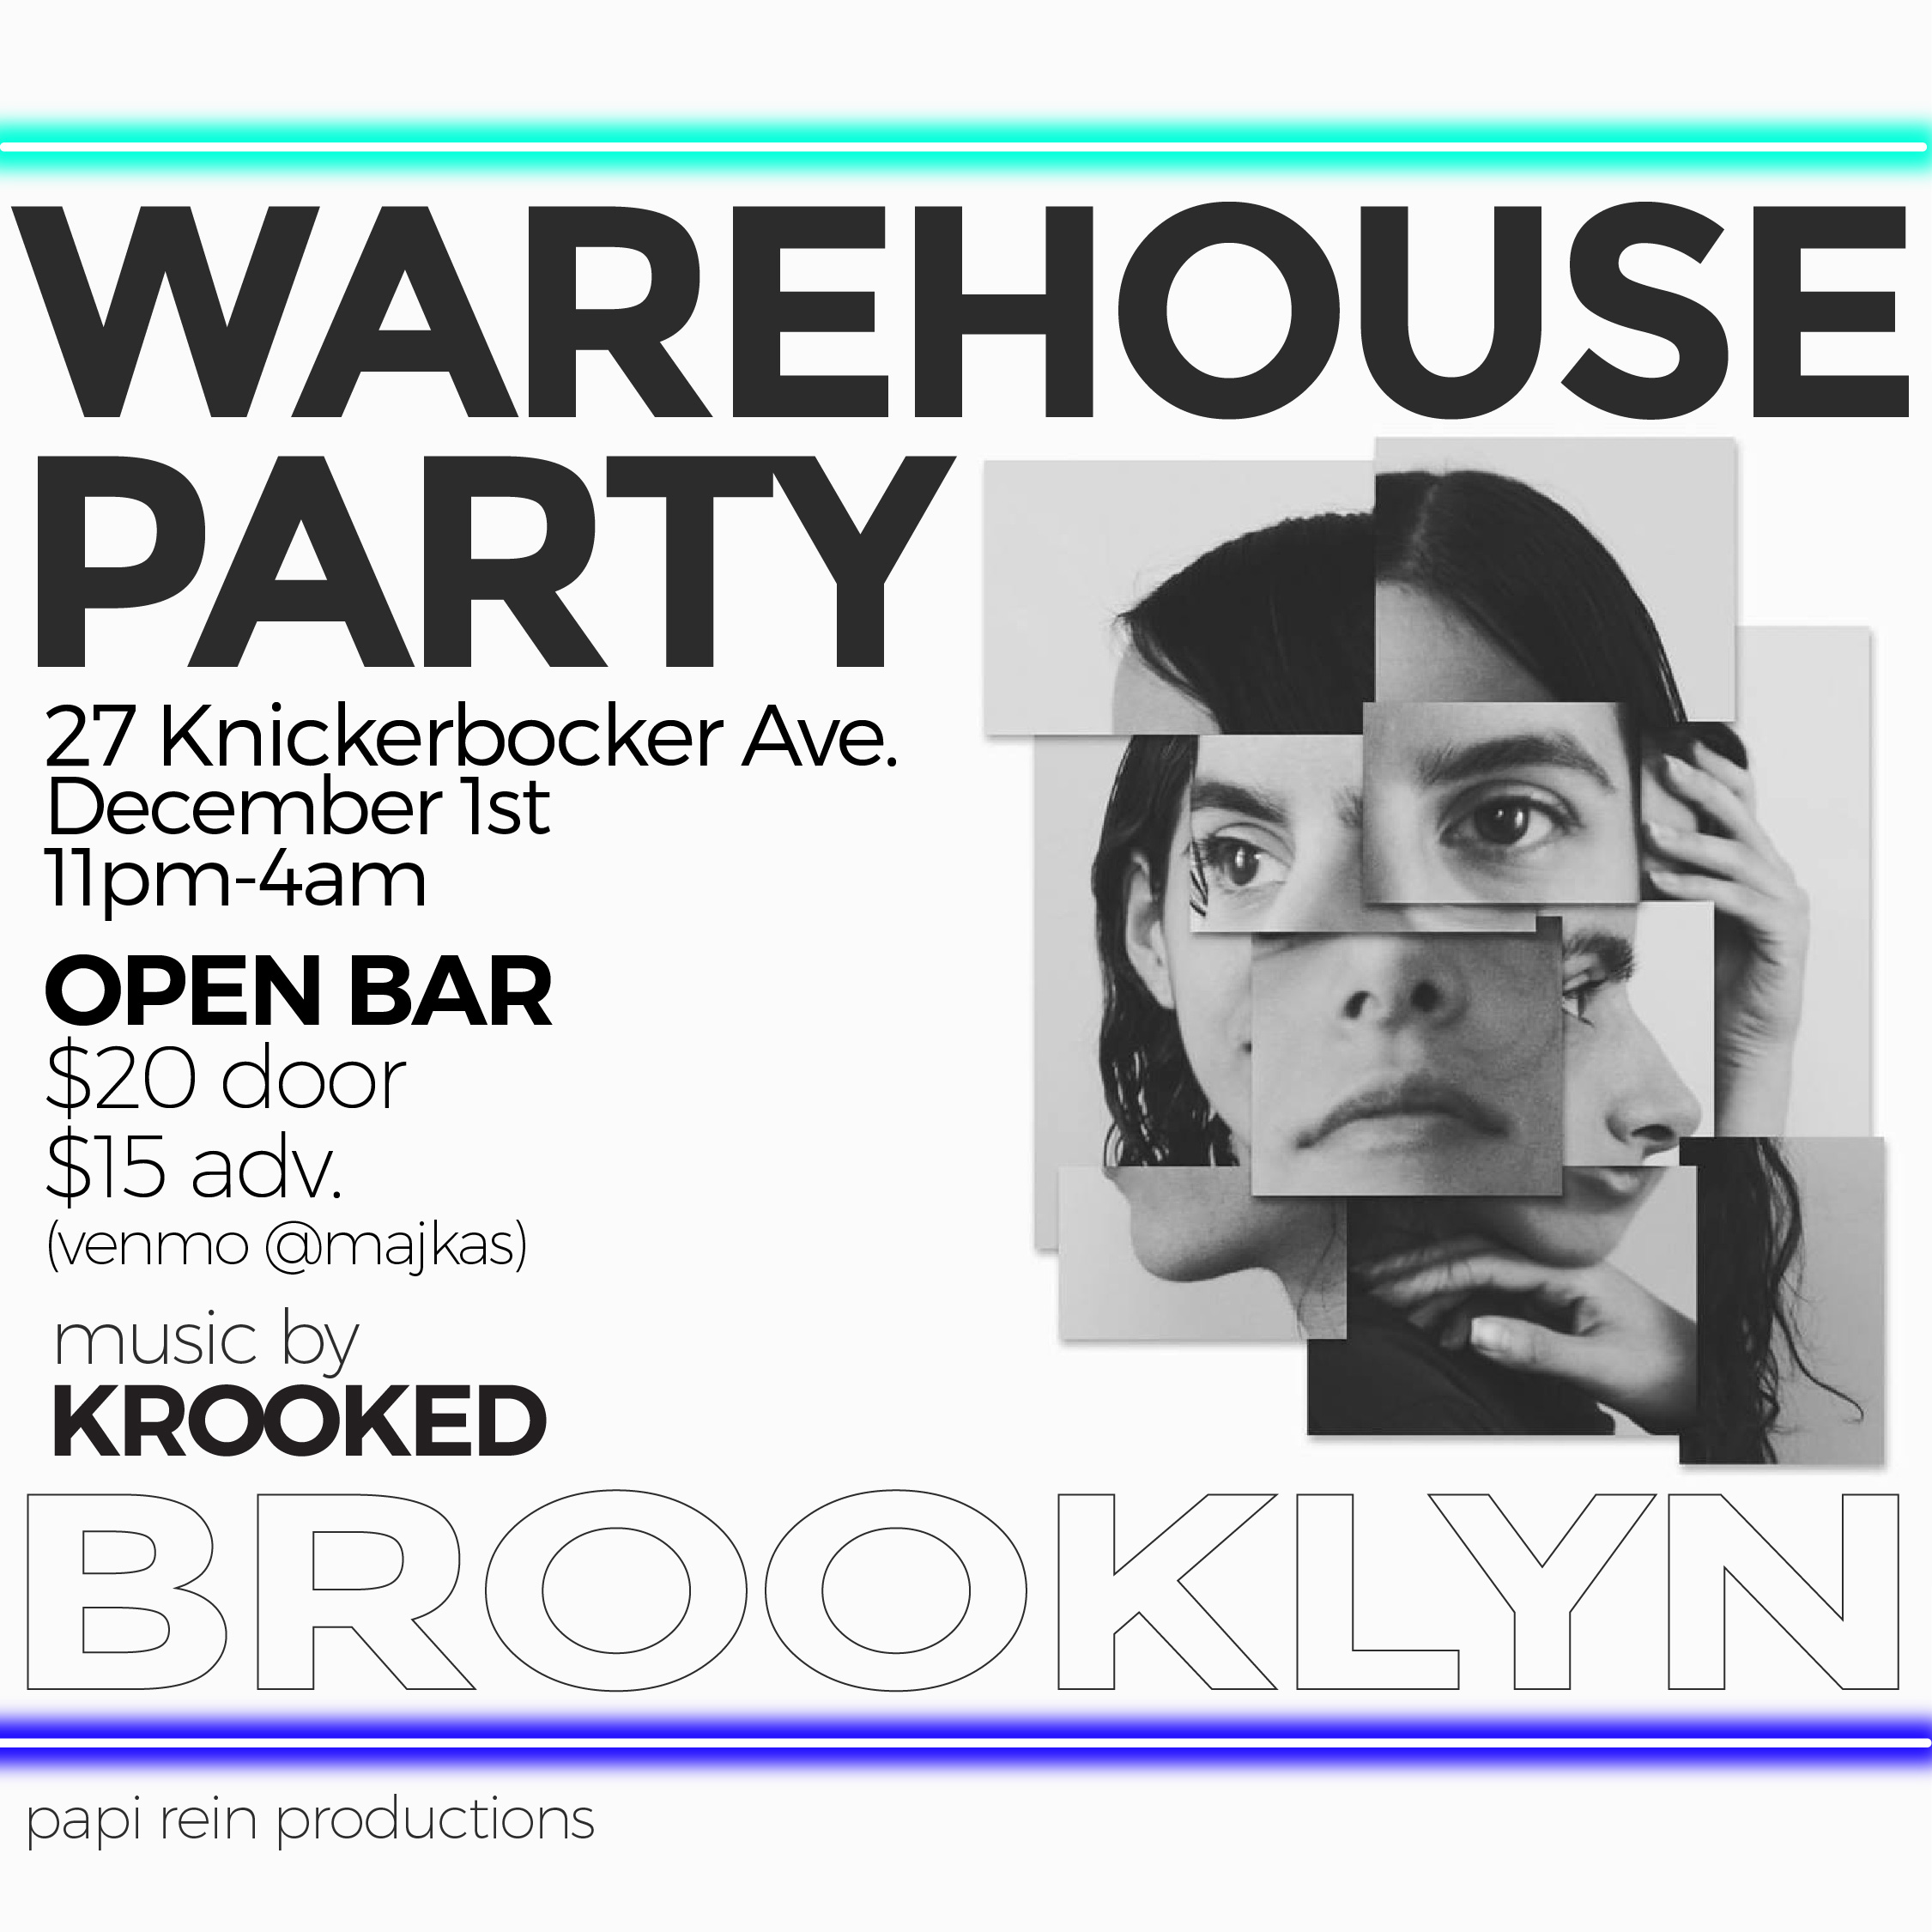 Warehouse party flier-03